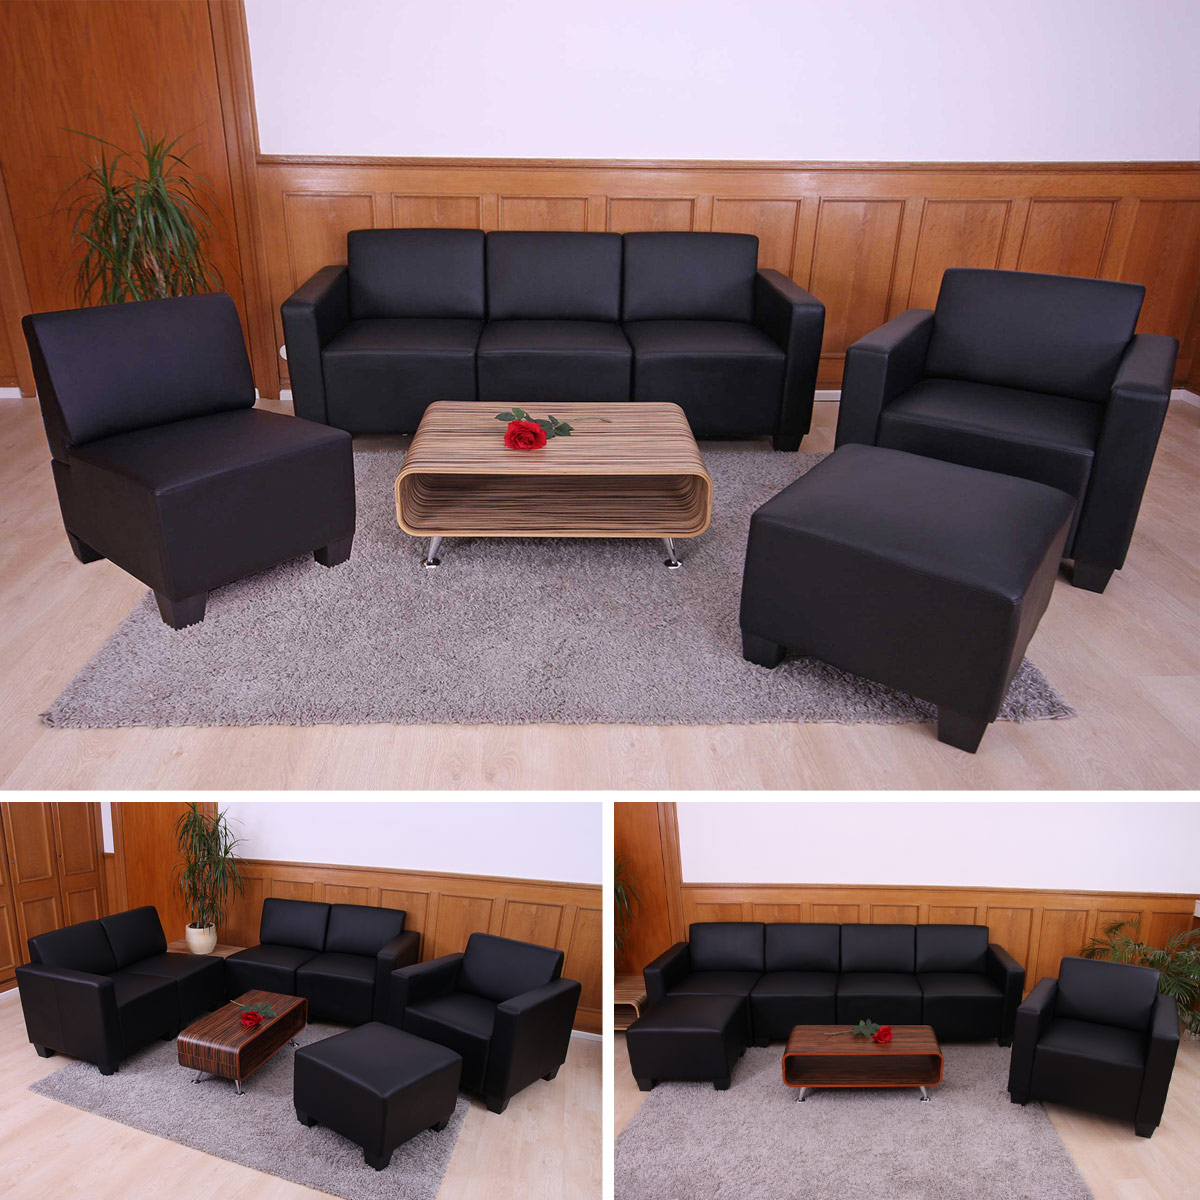 modular sofa system couch garnitur lyon 3 1 1 1 kunstleder schwarz. Black Bedroom Furniture Sets. Home Design Ideas